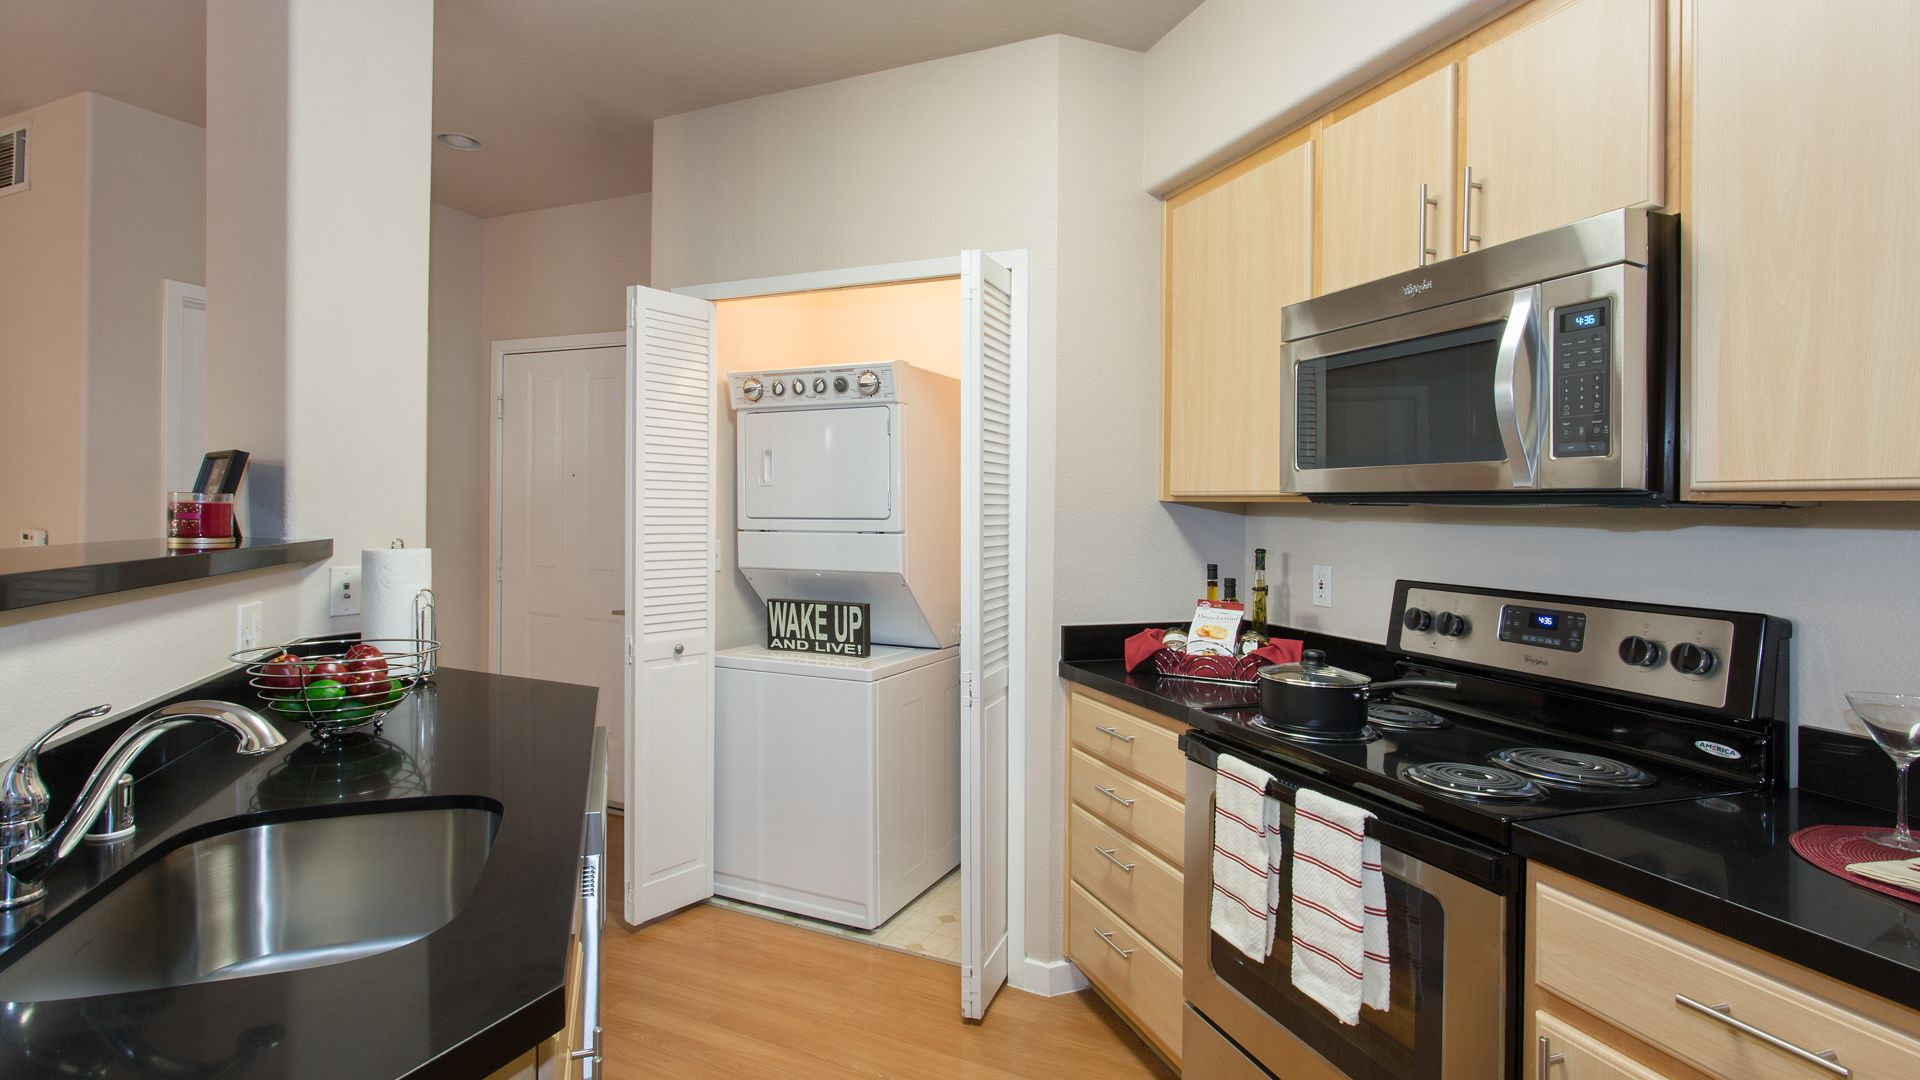 Acappella Pasadena - Kitchen and Washer/ Dryer